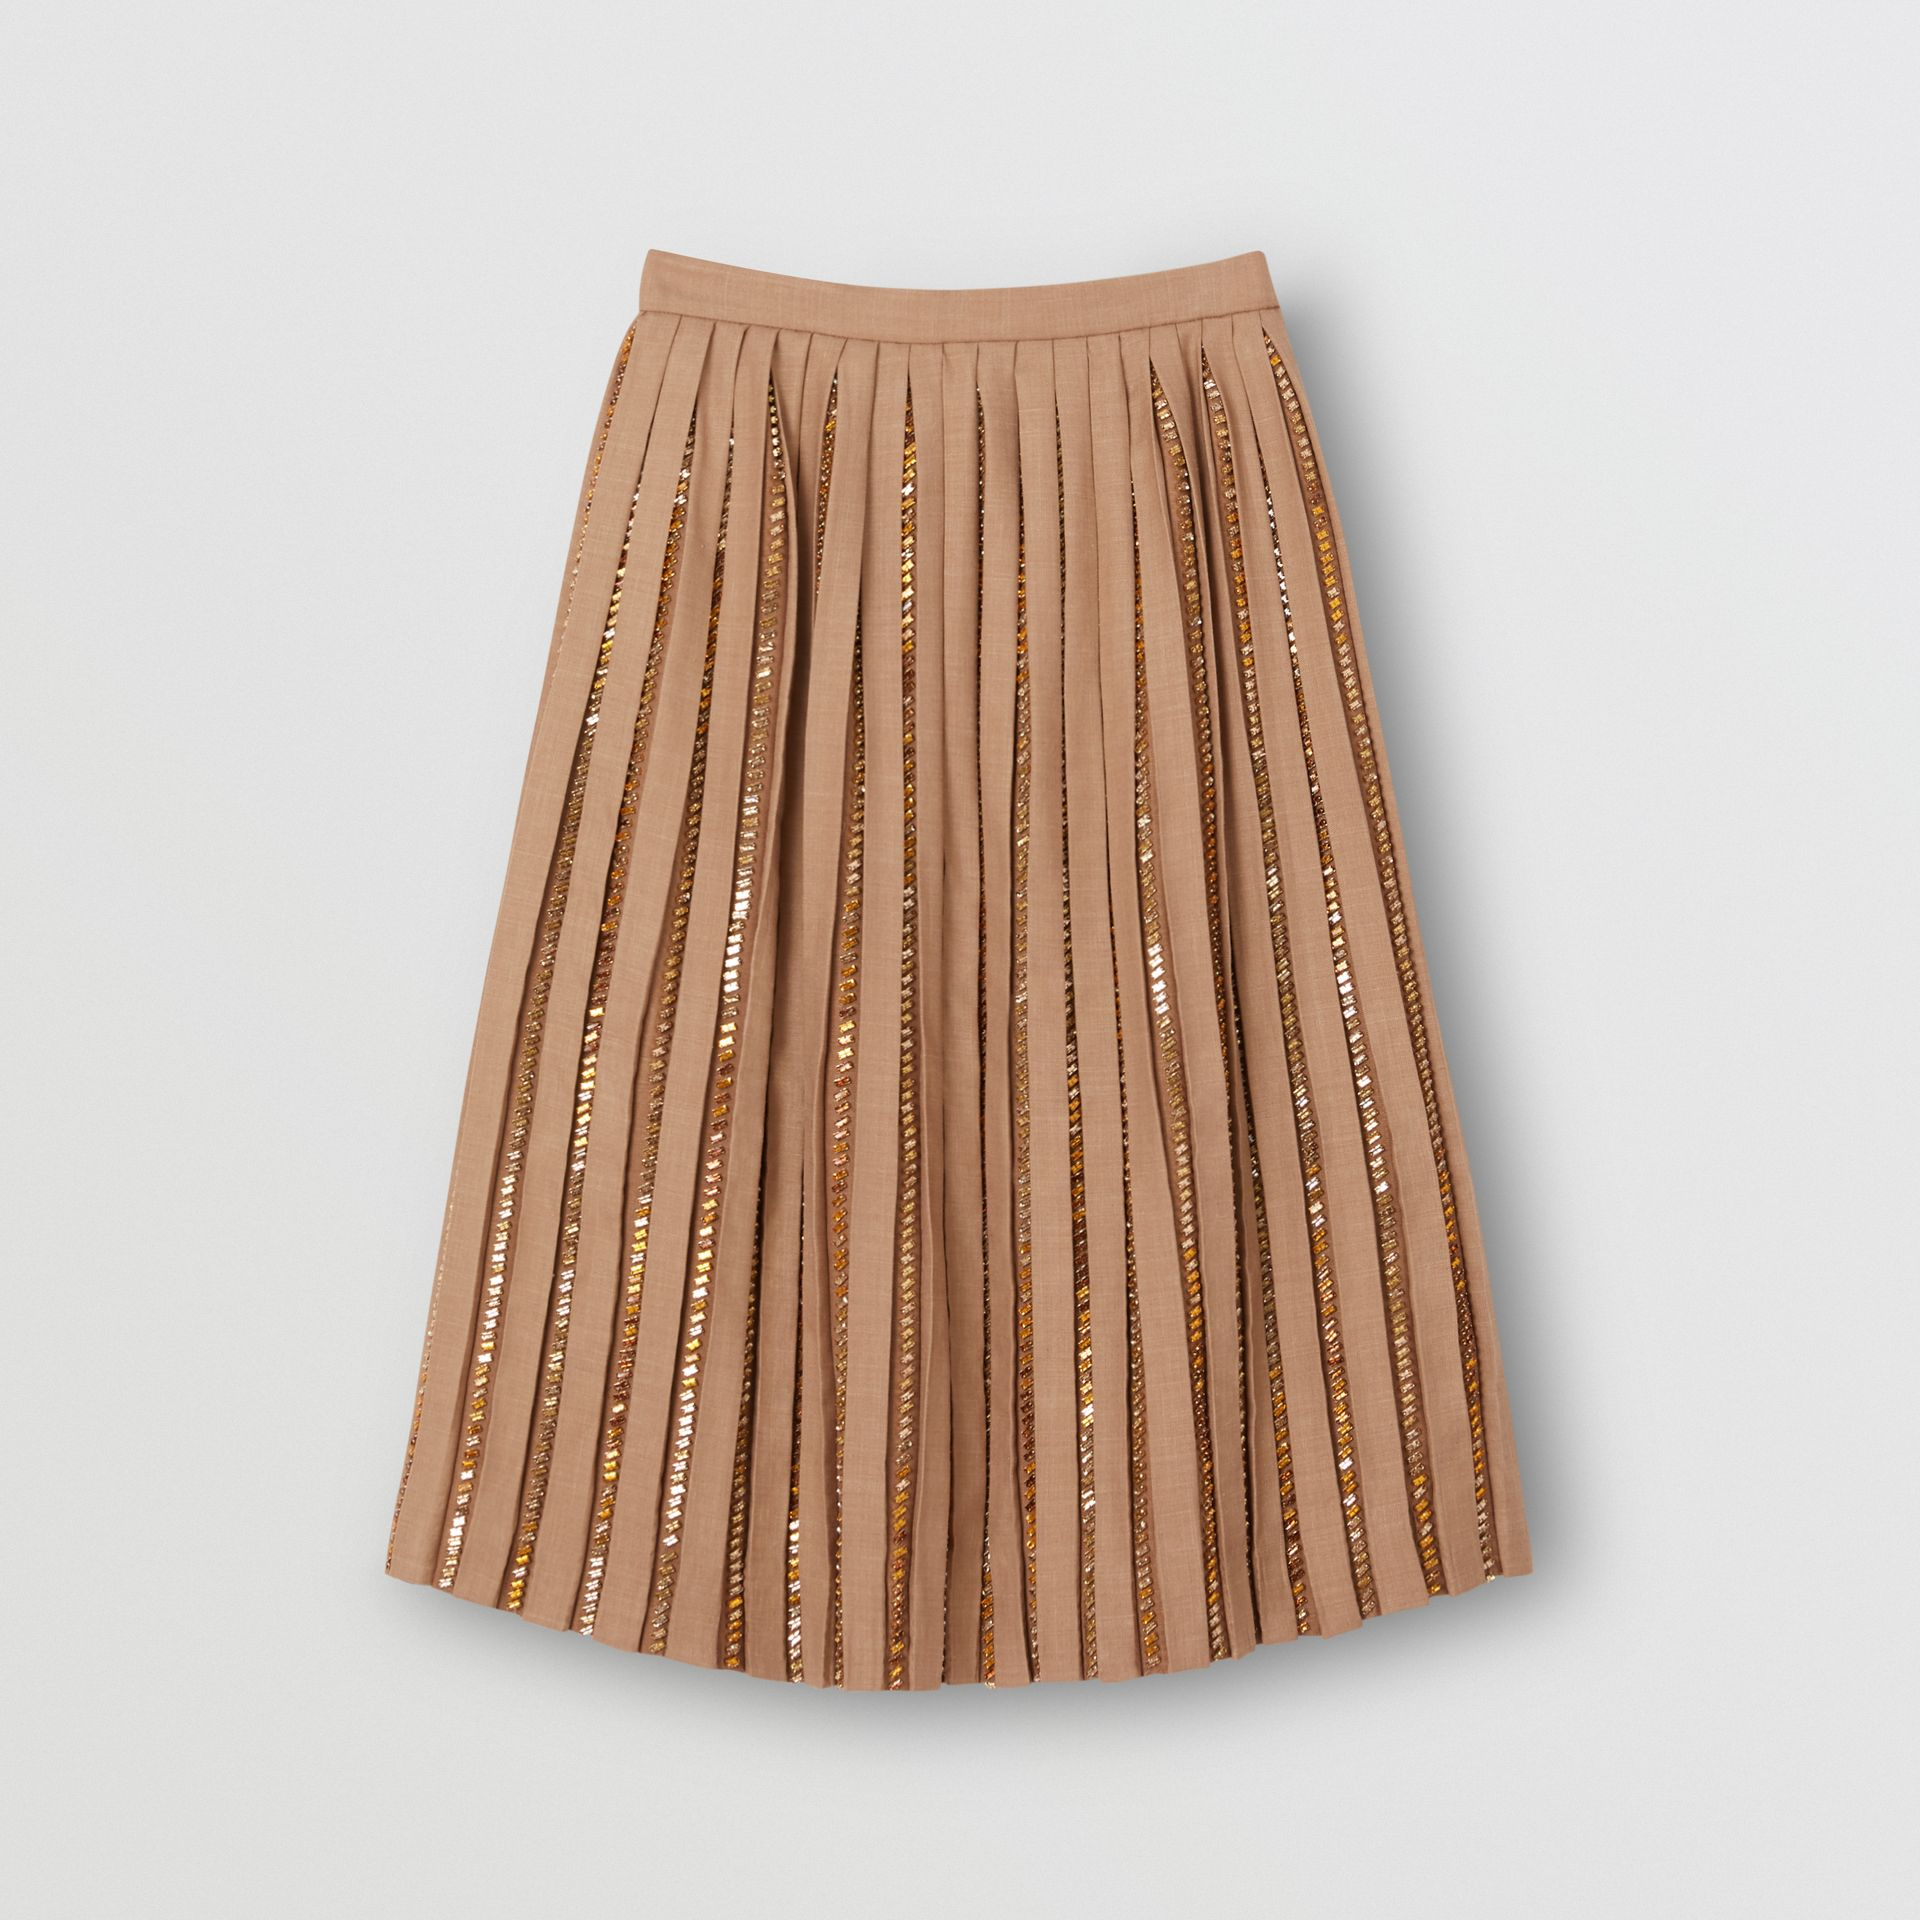 Crystal Detail Plissé Soleil Wool Silk Blend Skirt in Biscuit - Women | Burberry - gallery image 3